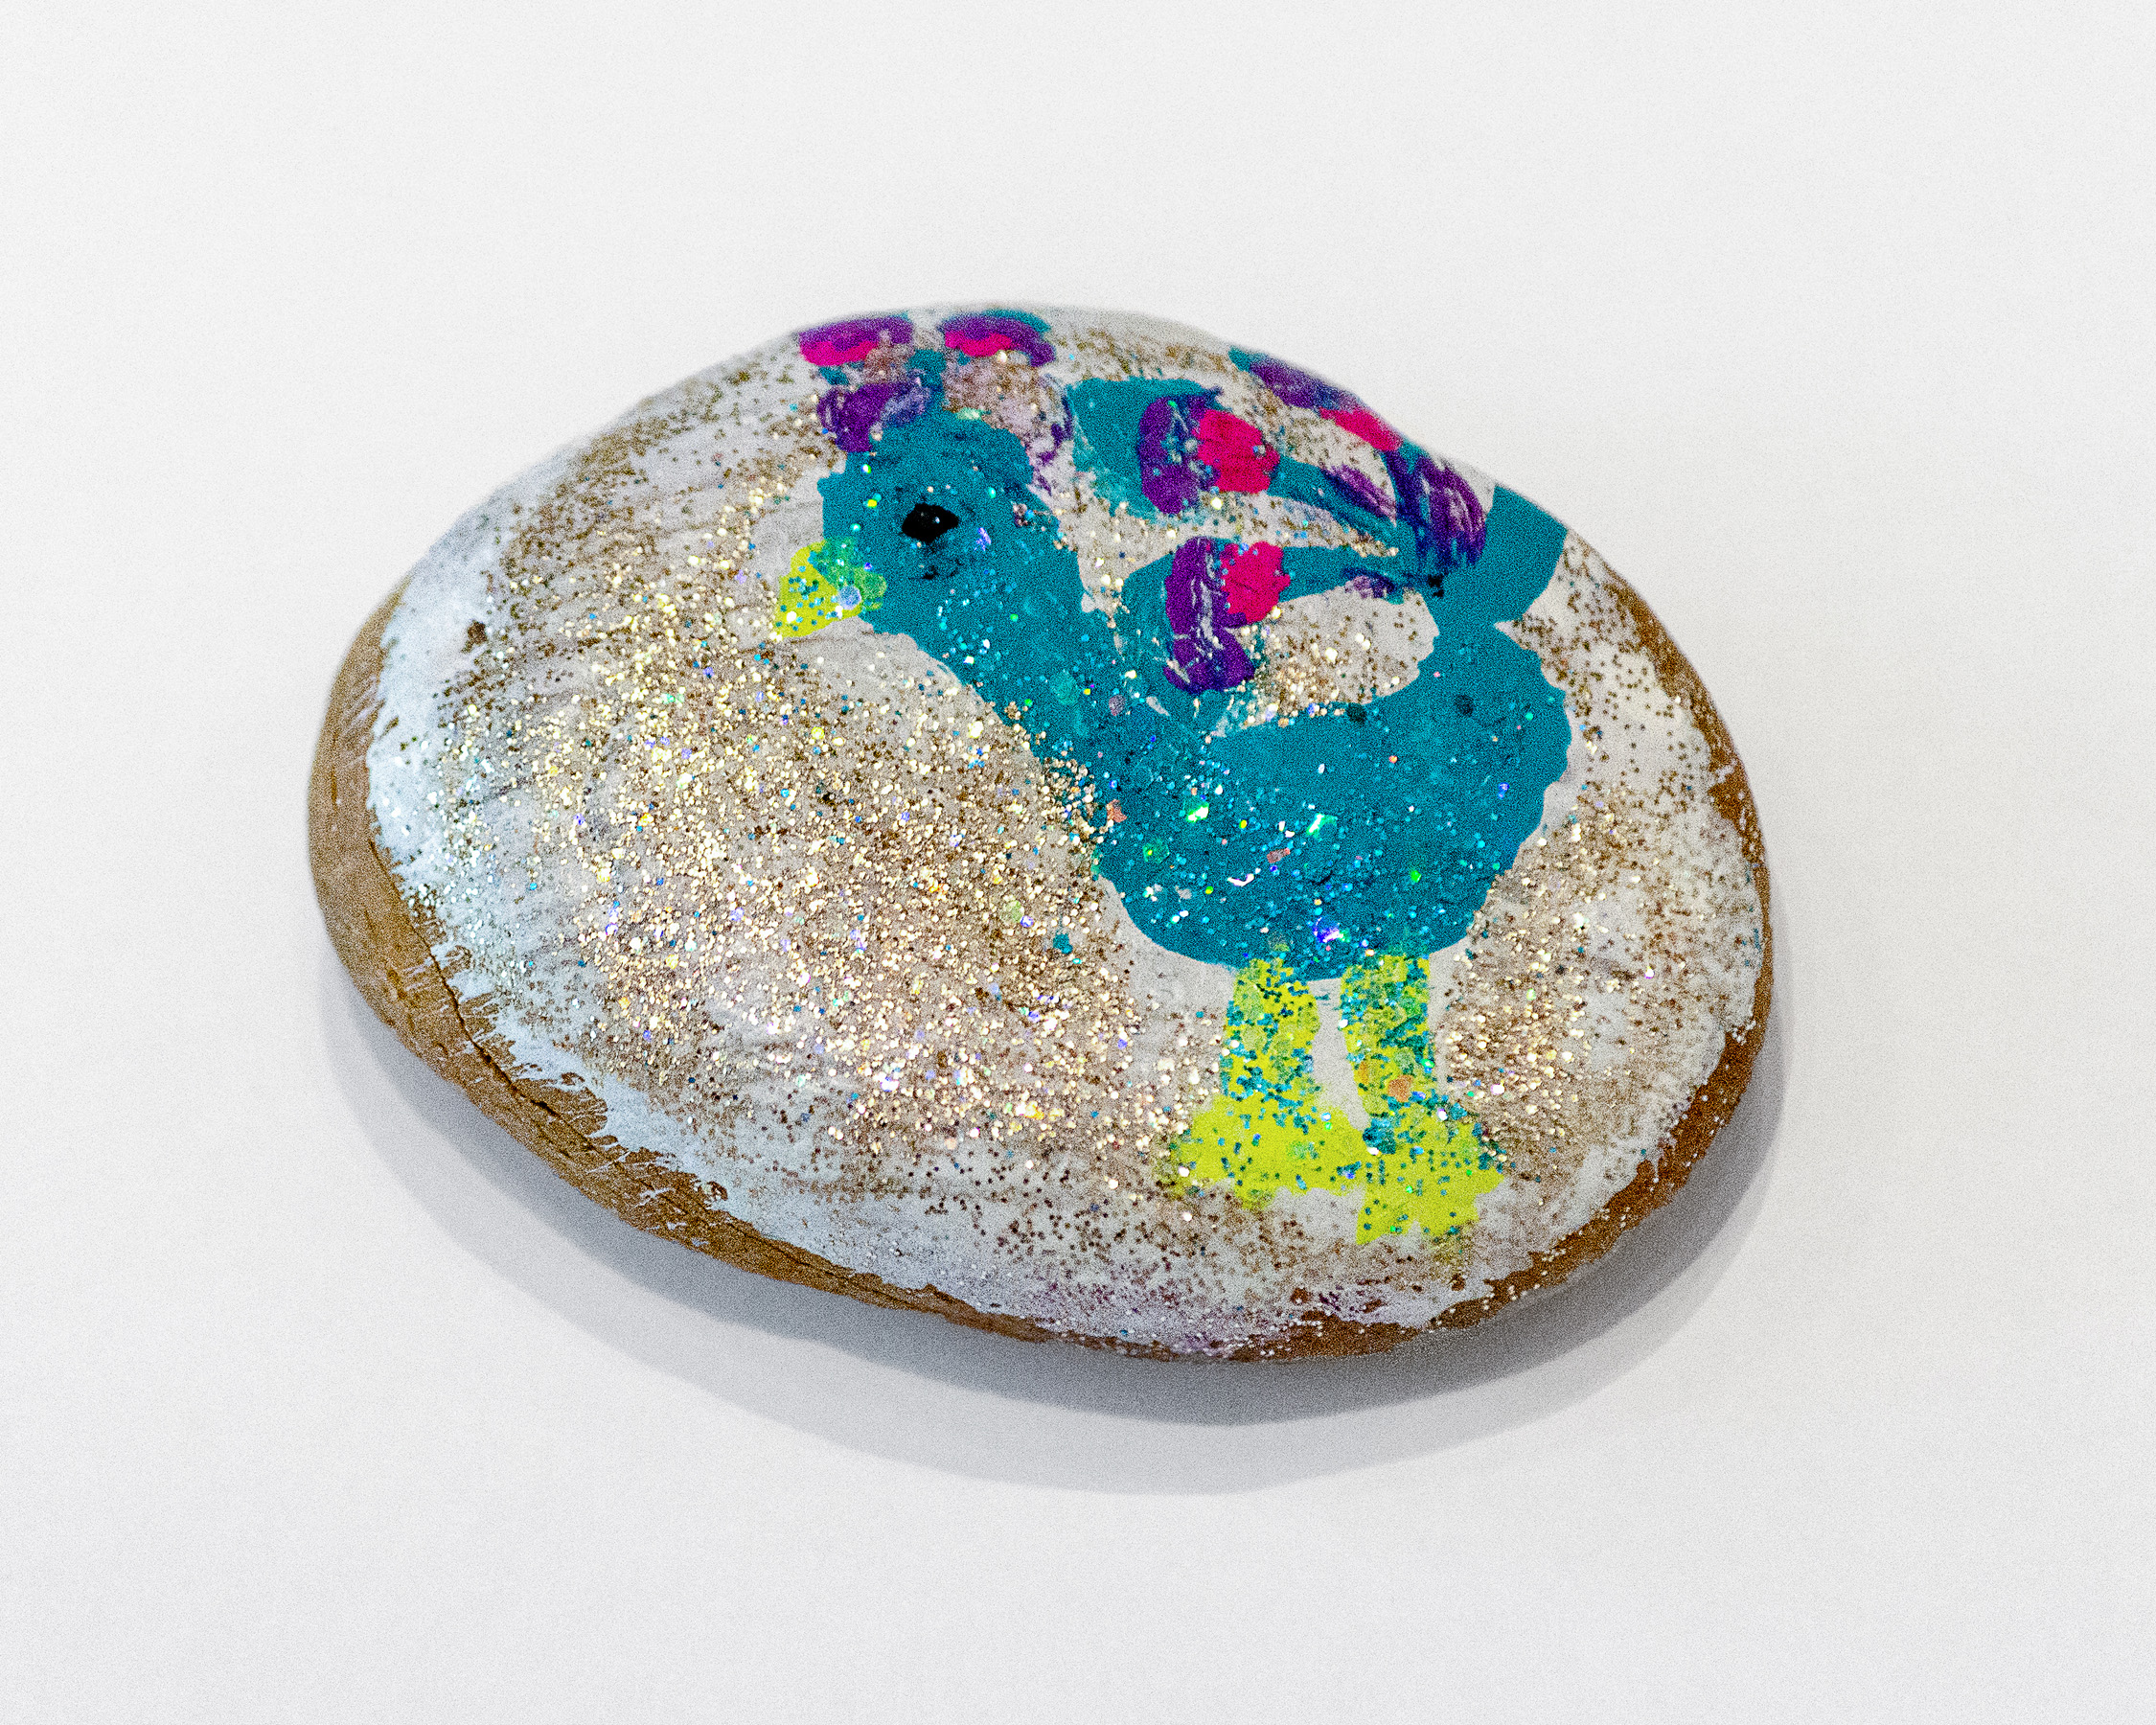 Adelae DeNike Palmer,    Mrs. Peacock , 2019, Acrylic and glitter on stone, 2.5 x 2 x 1 inches (6.5 x 5 x 2.5 cm)